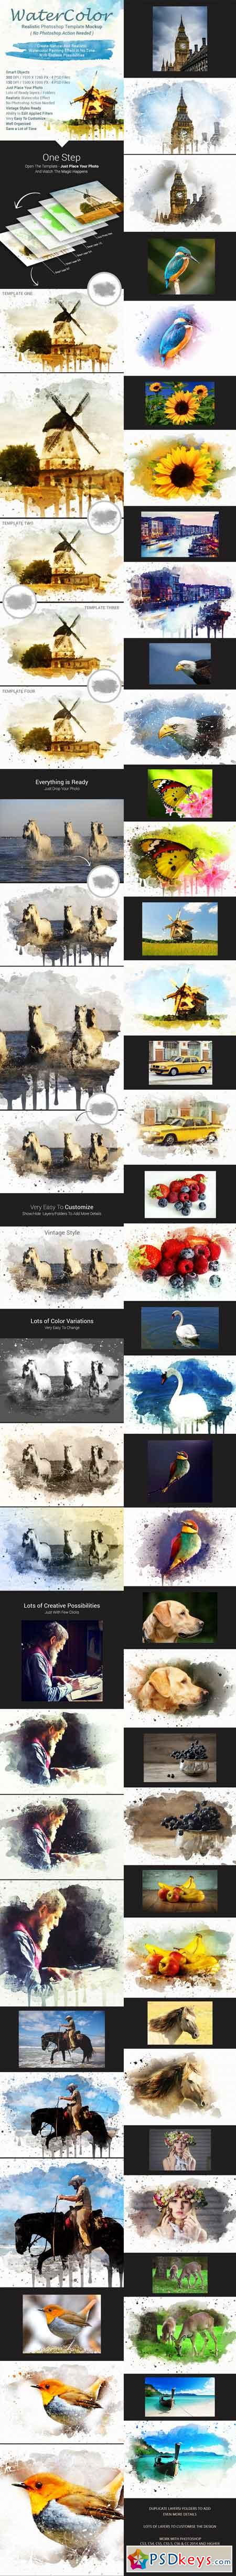 Realistic Watercolor Photoshop Template Mock-Ups 17449967